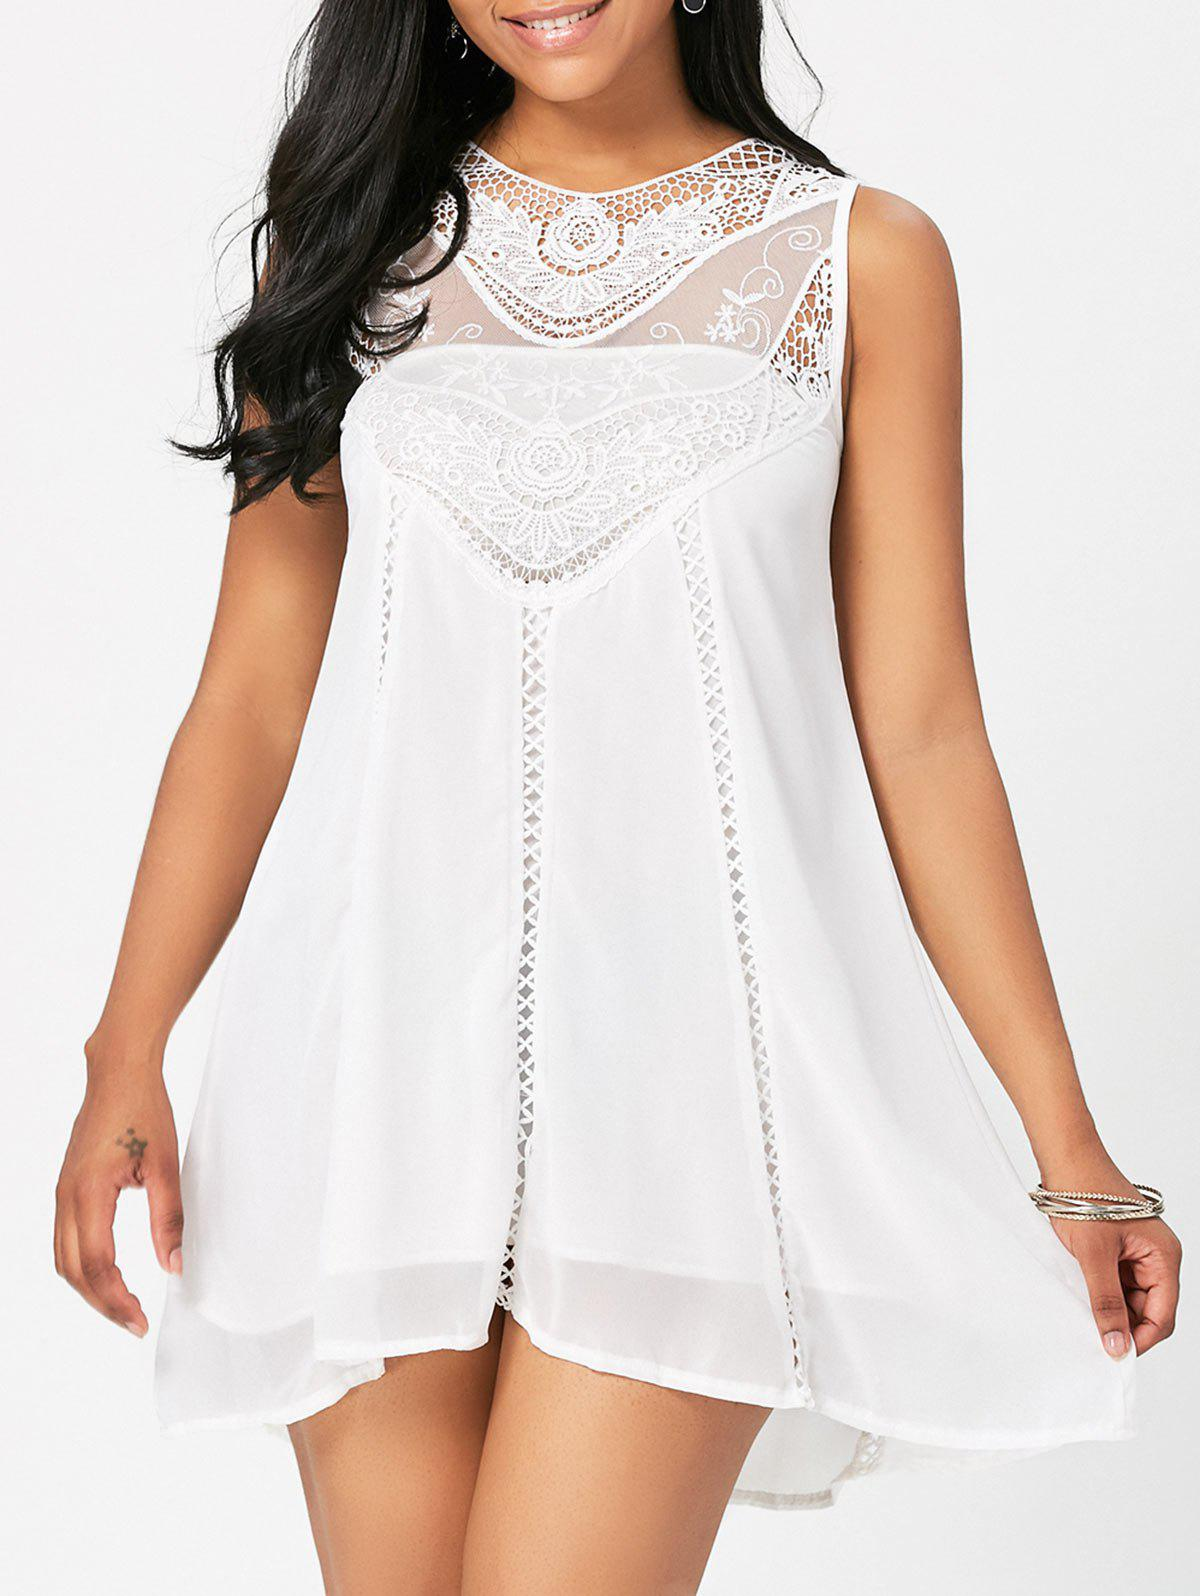 Store Sweet Round Neck White Cut Out Lace Spliced Sundress For Women